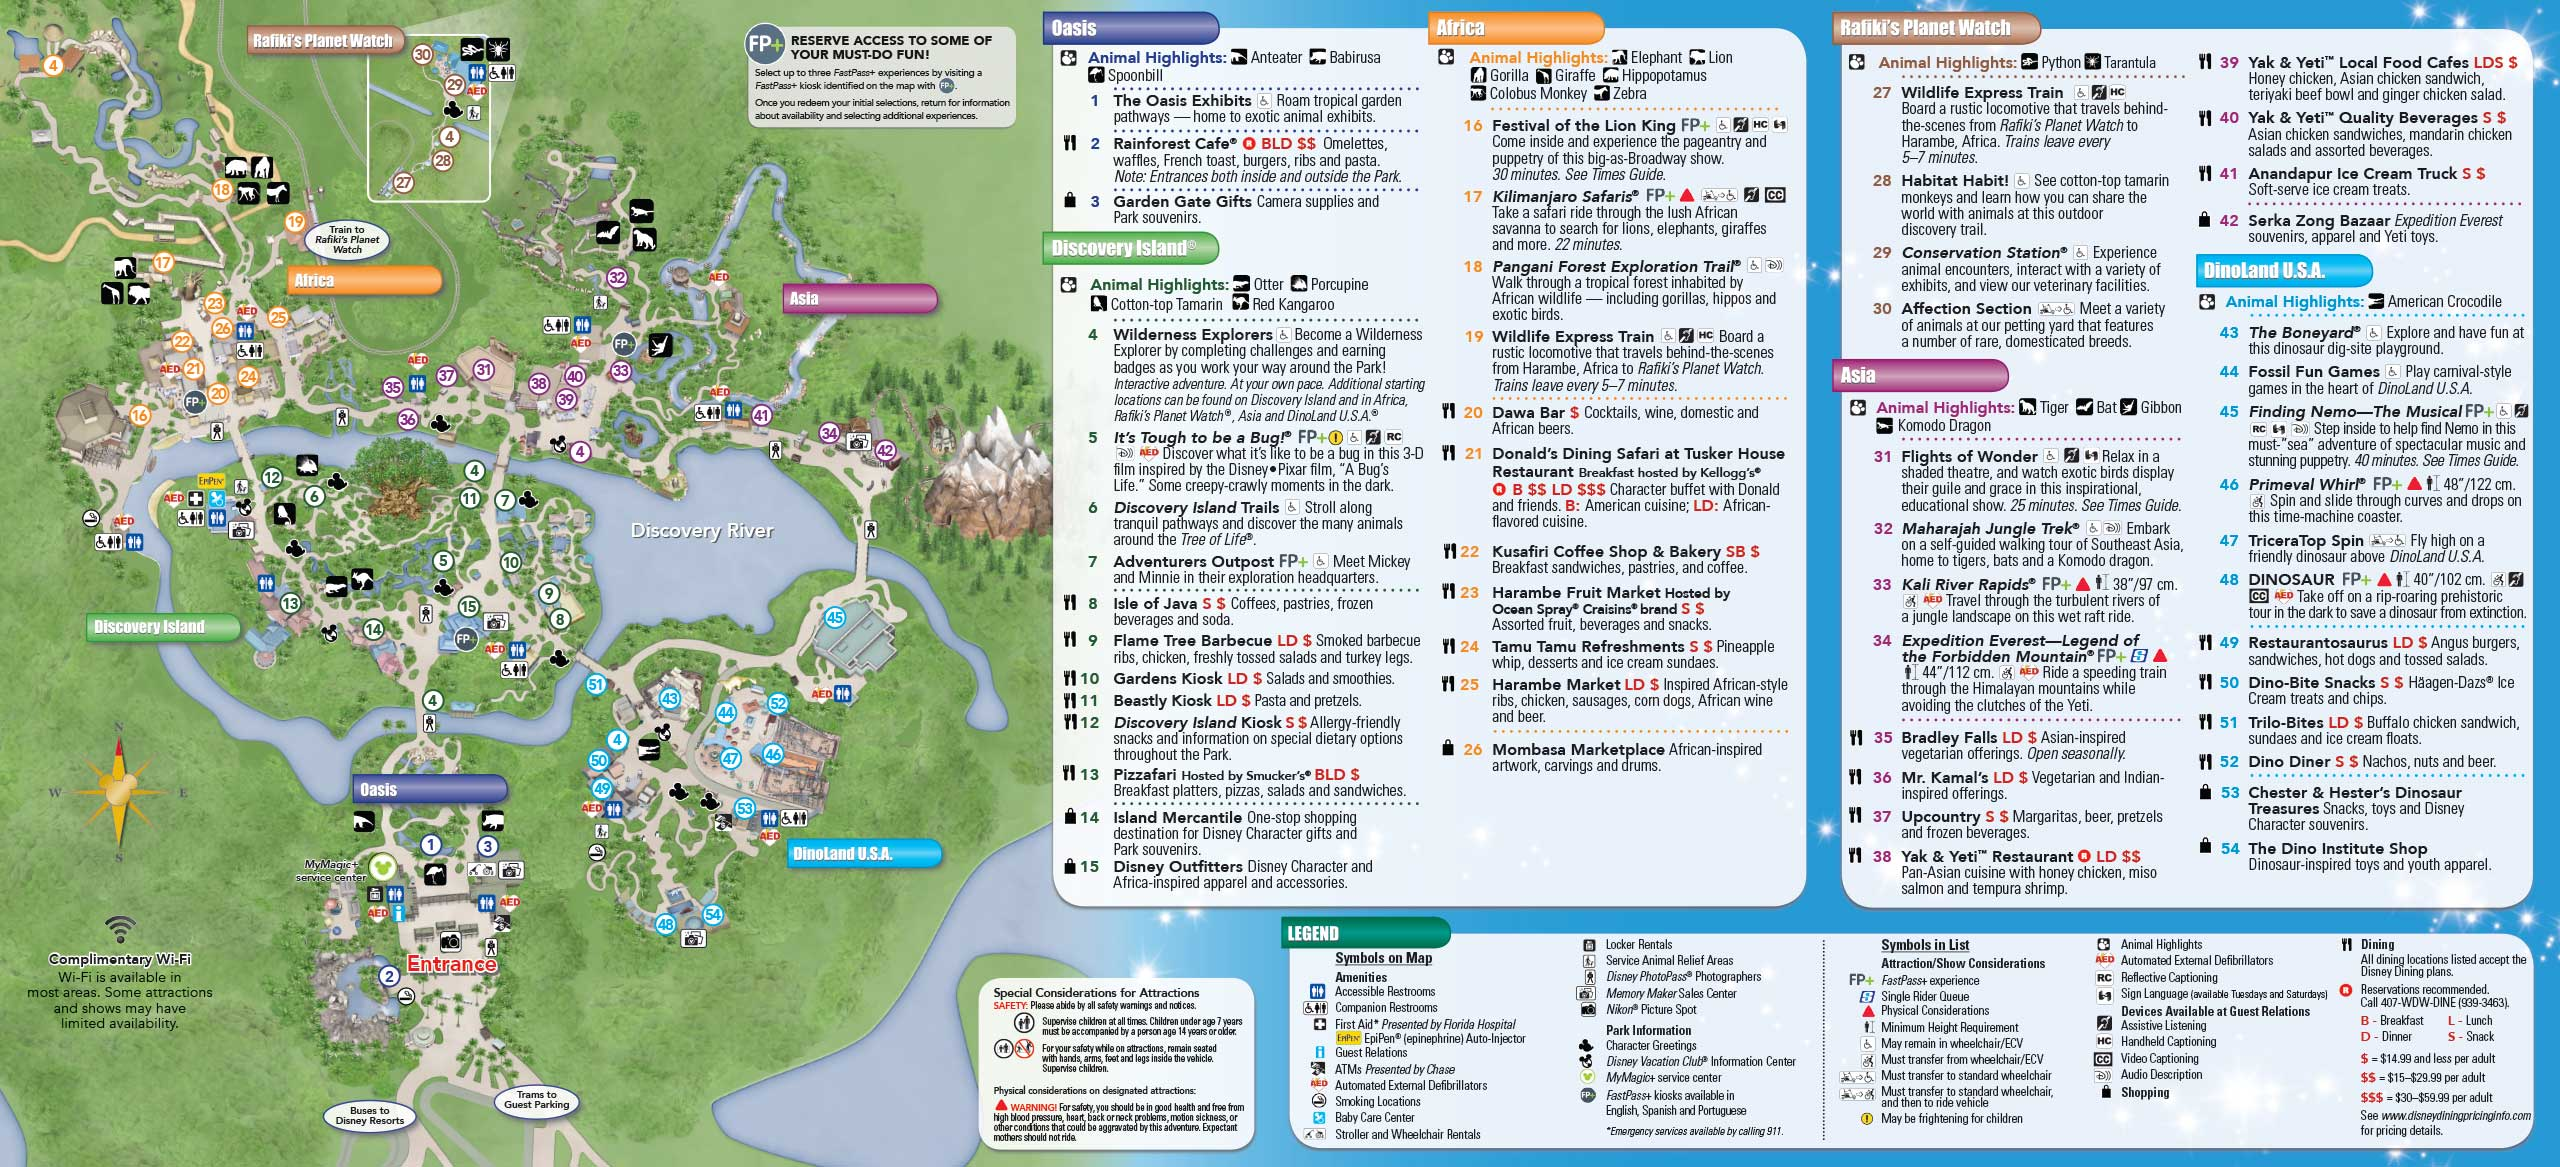 May 2015 Walt Disney World Resort Park Maps - Photo 1 of 14